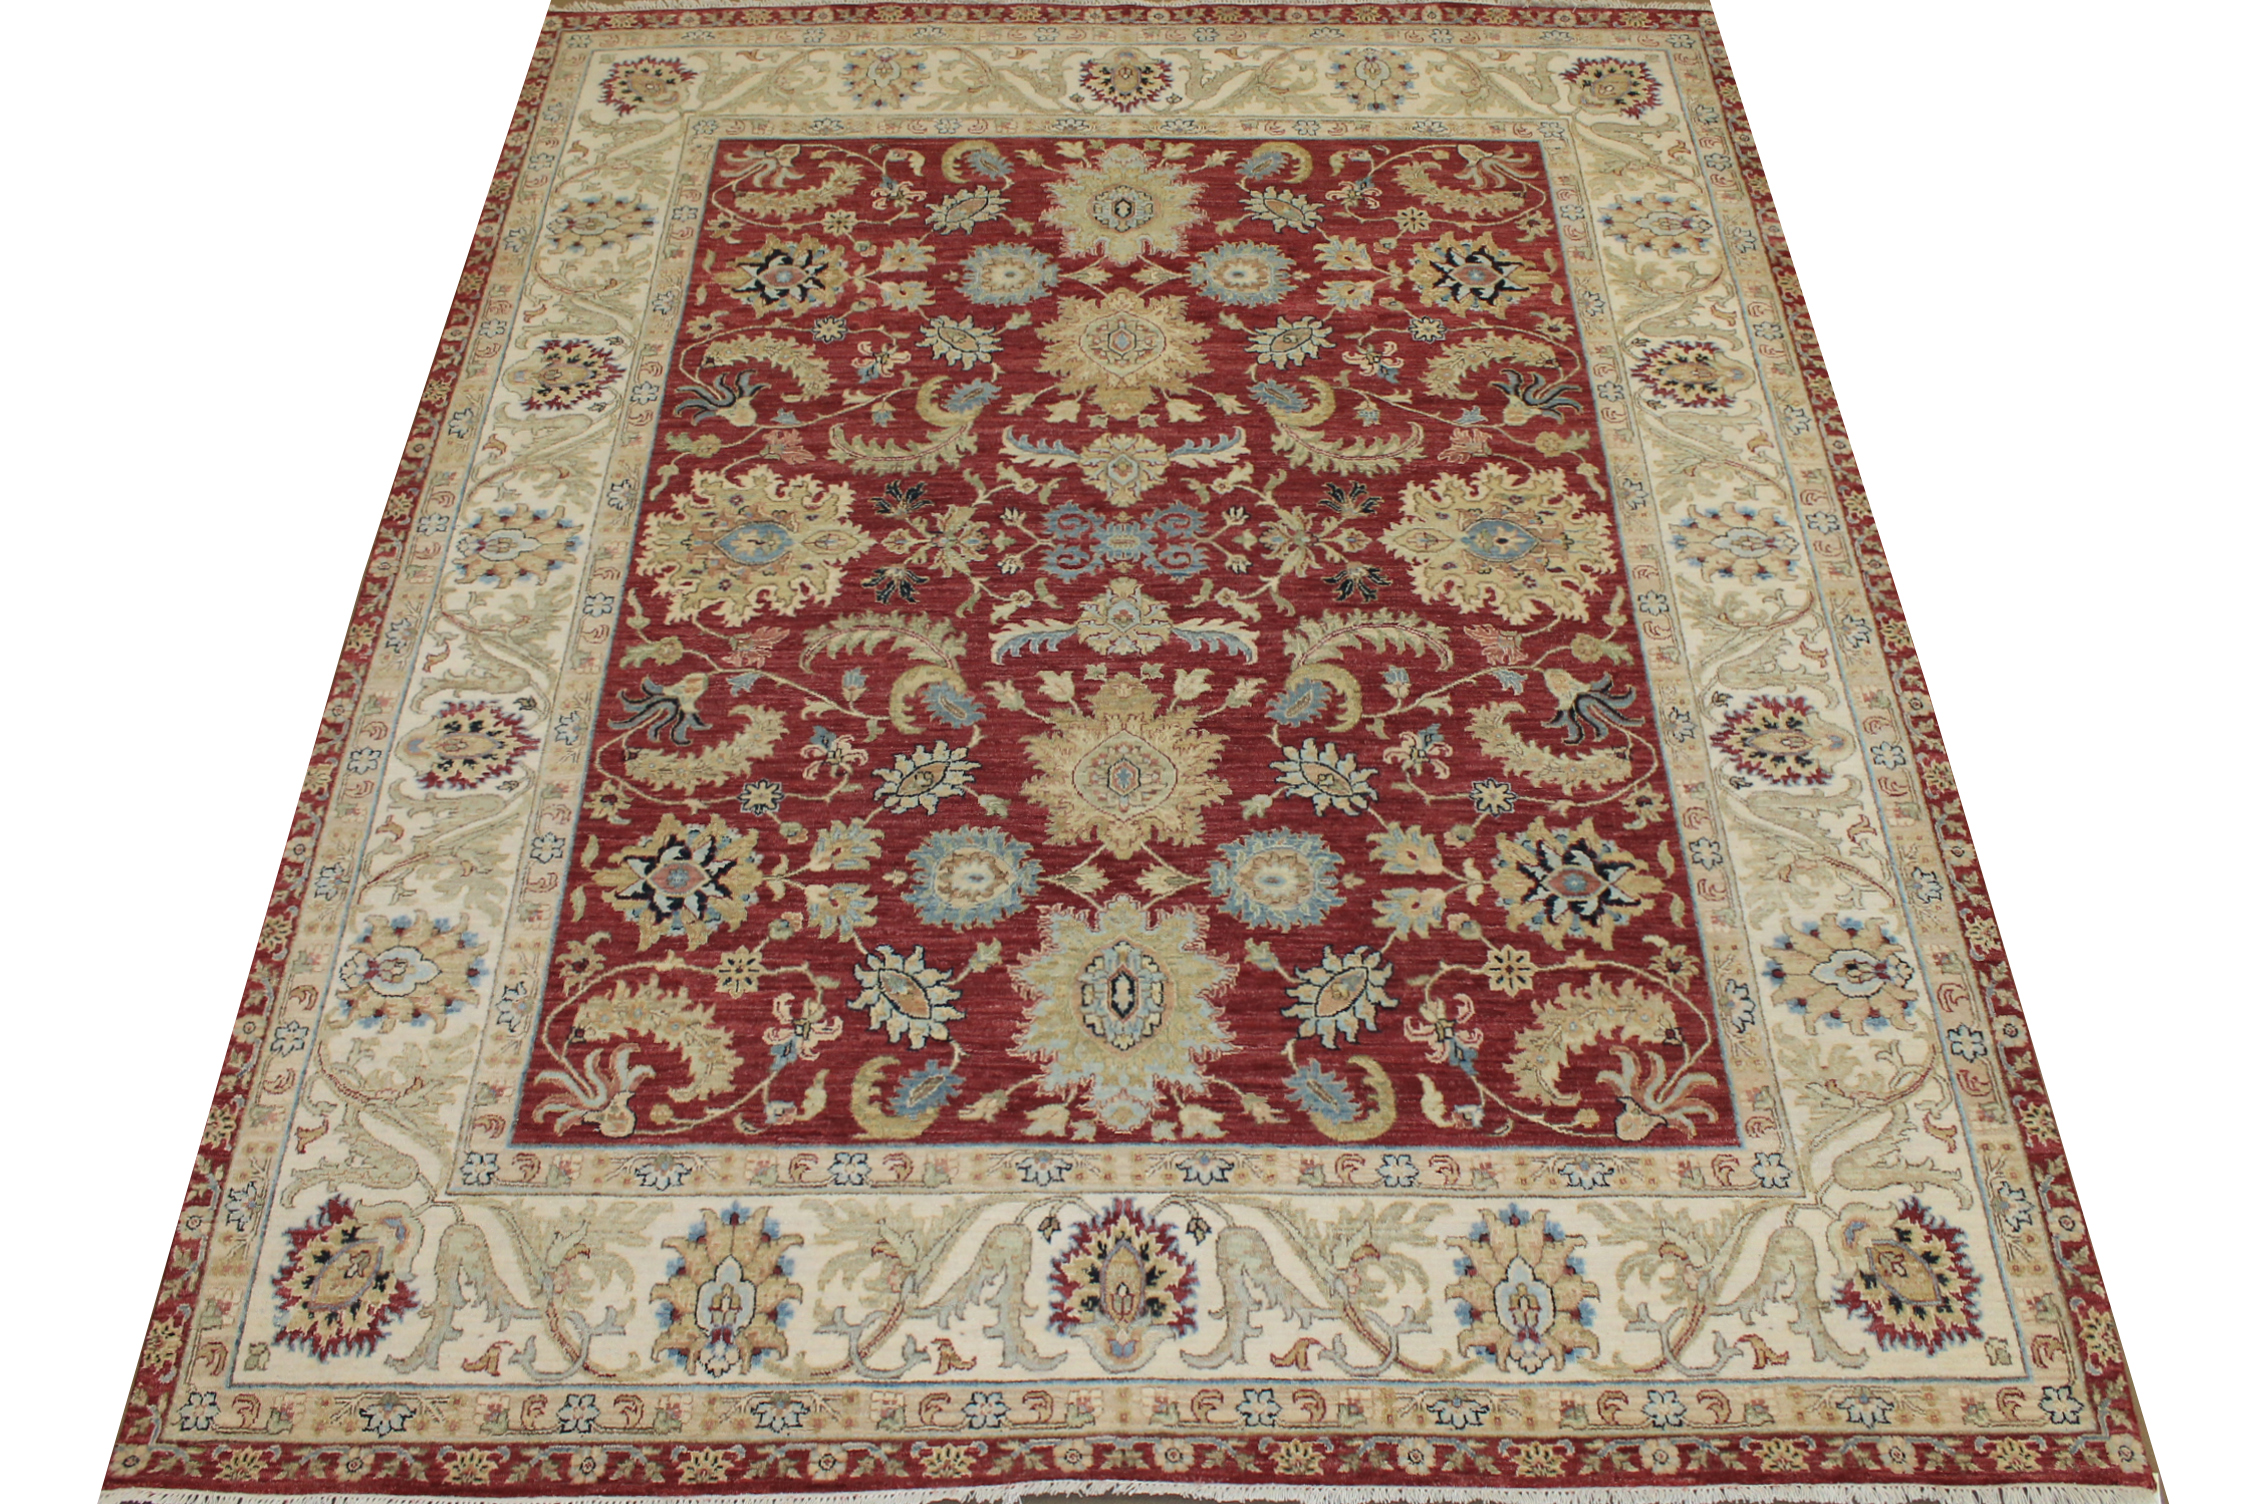 8x10 Transitional Hand Knotted Wool & Viscose Area Rug - MR025102